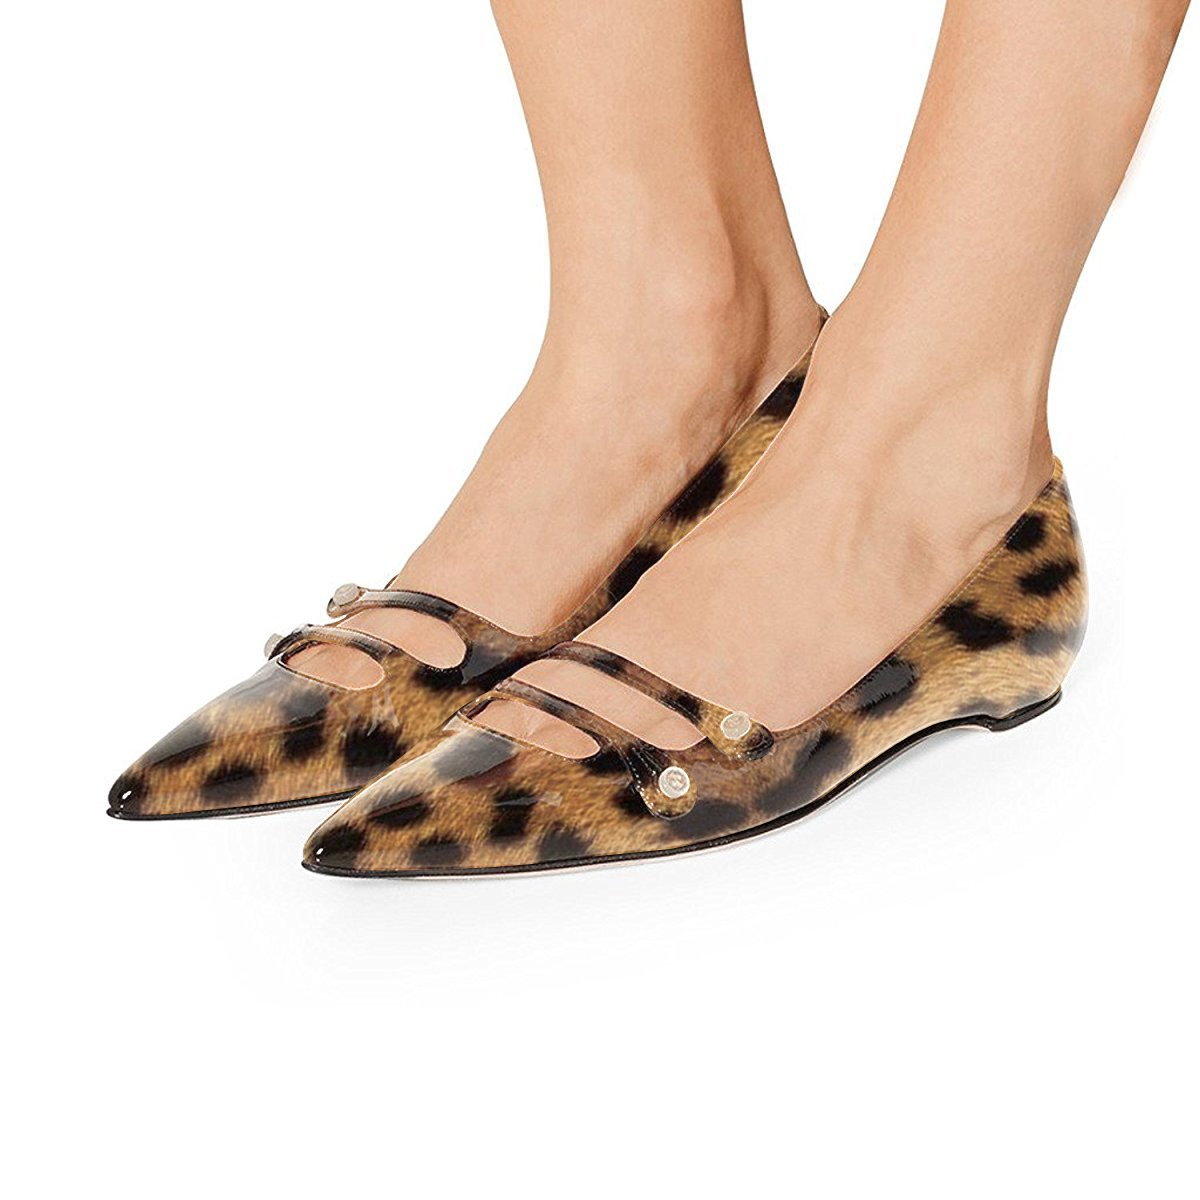 YDN Women Pointed Toe Slip on Flats Hidden Low Heels Pumps Comfort Shoes with Straps B07FYC71B6 7 M US|Leopard Printing